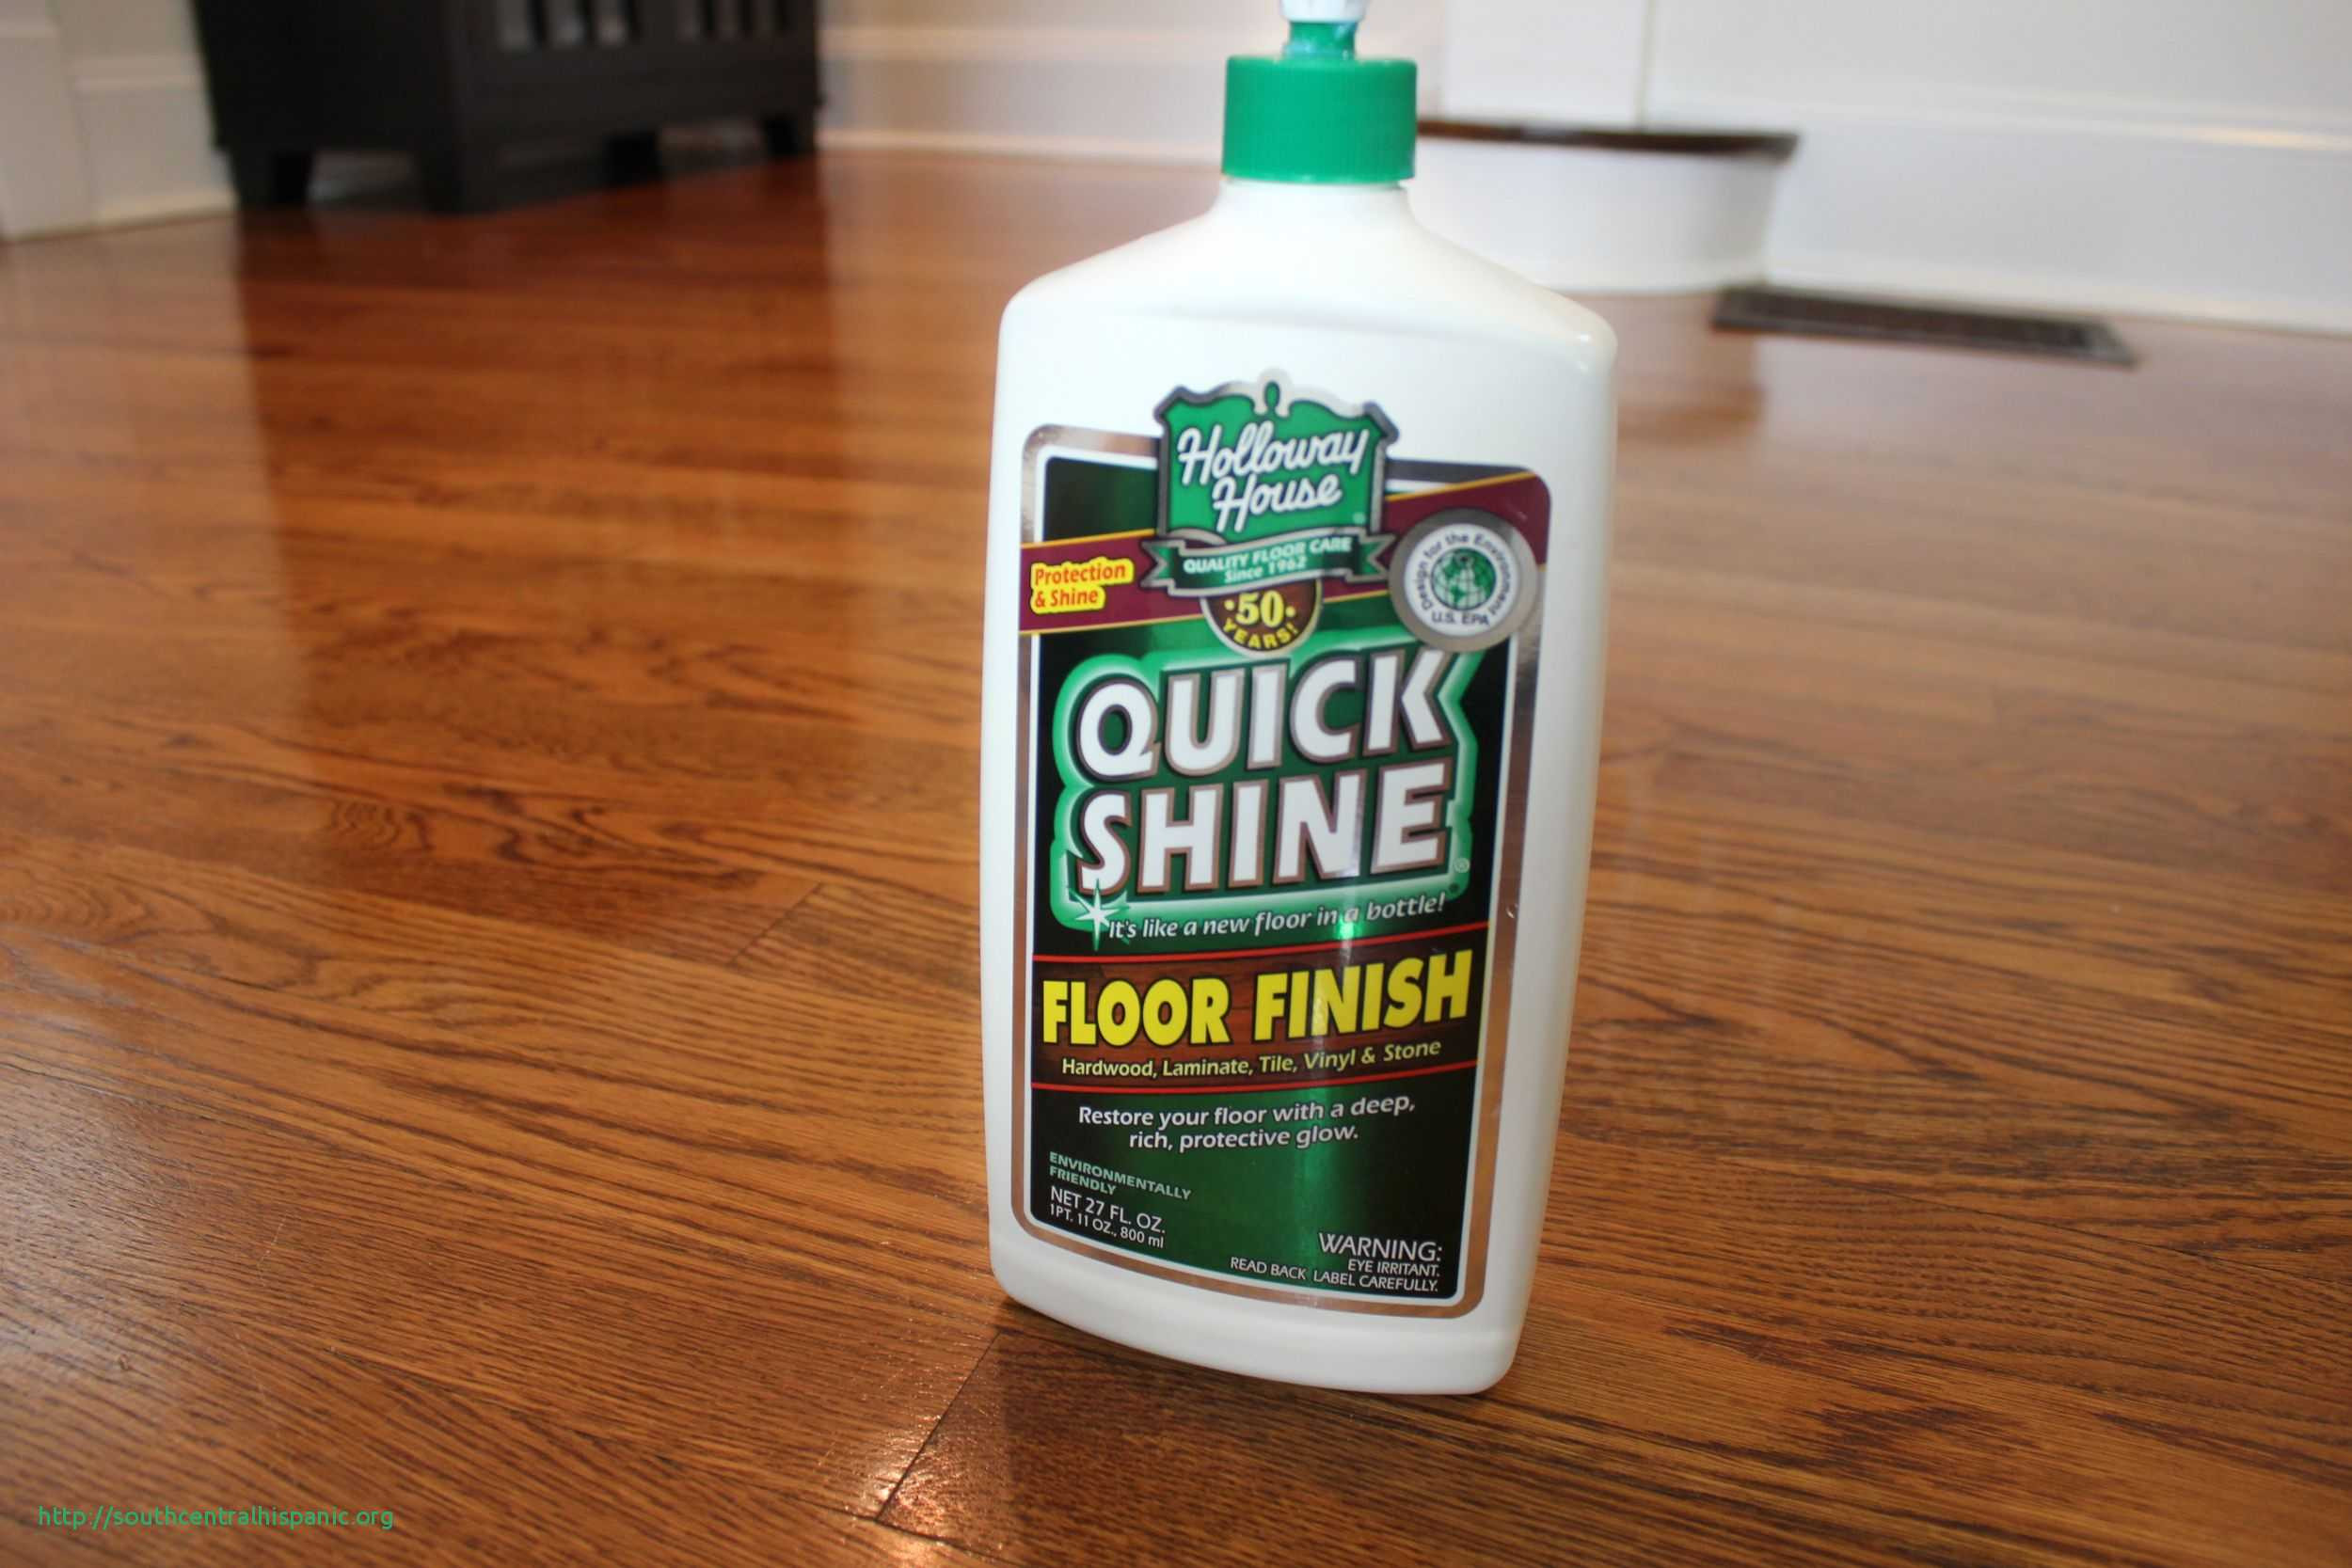 home depot hardwood floor cleaning products of 16 luxe quick shine floor finish reviews ideas blog in were giving away a shopping spree to the home depot so you can shop to your